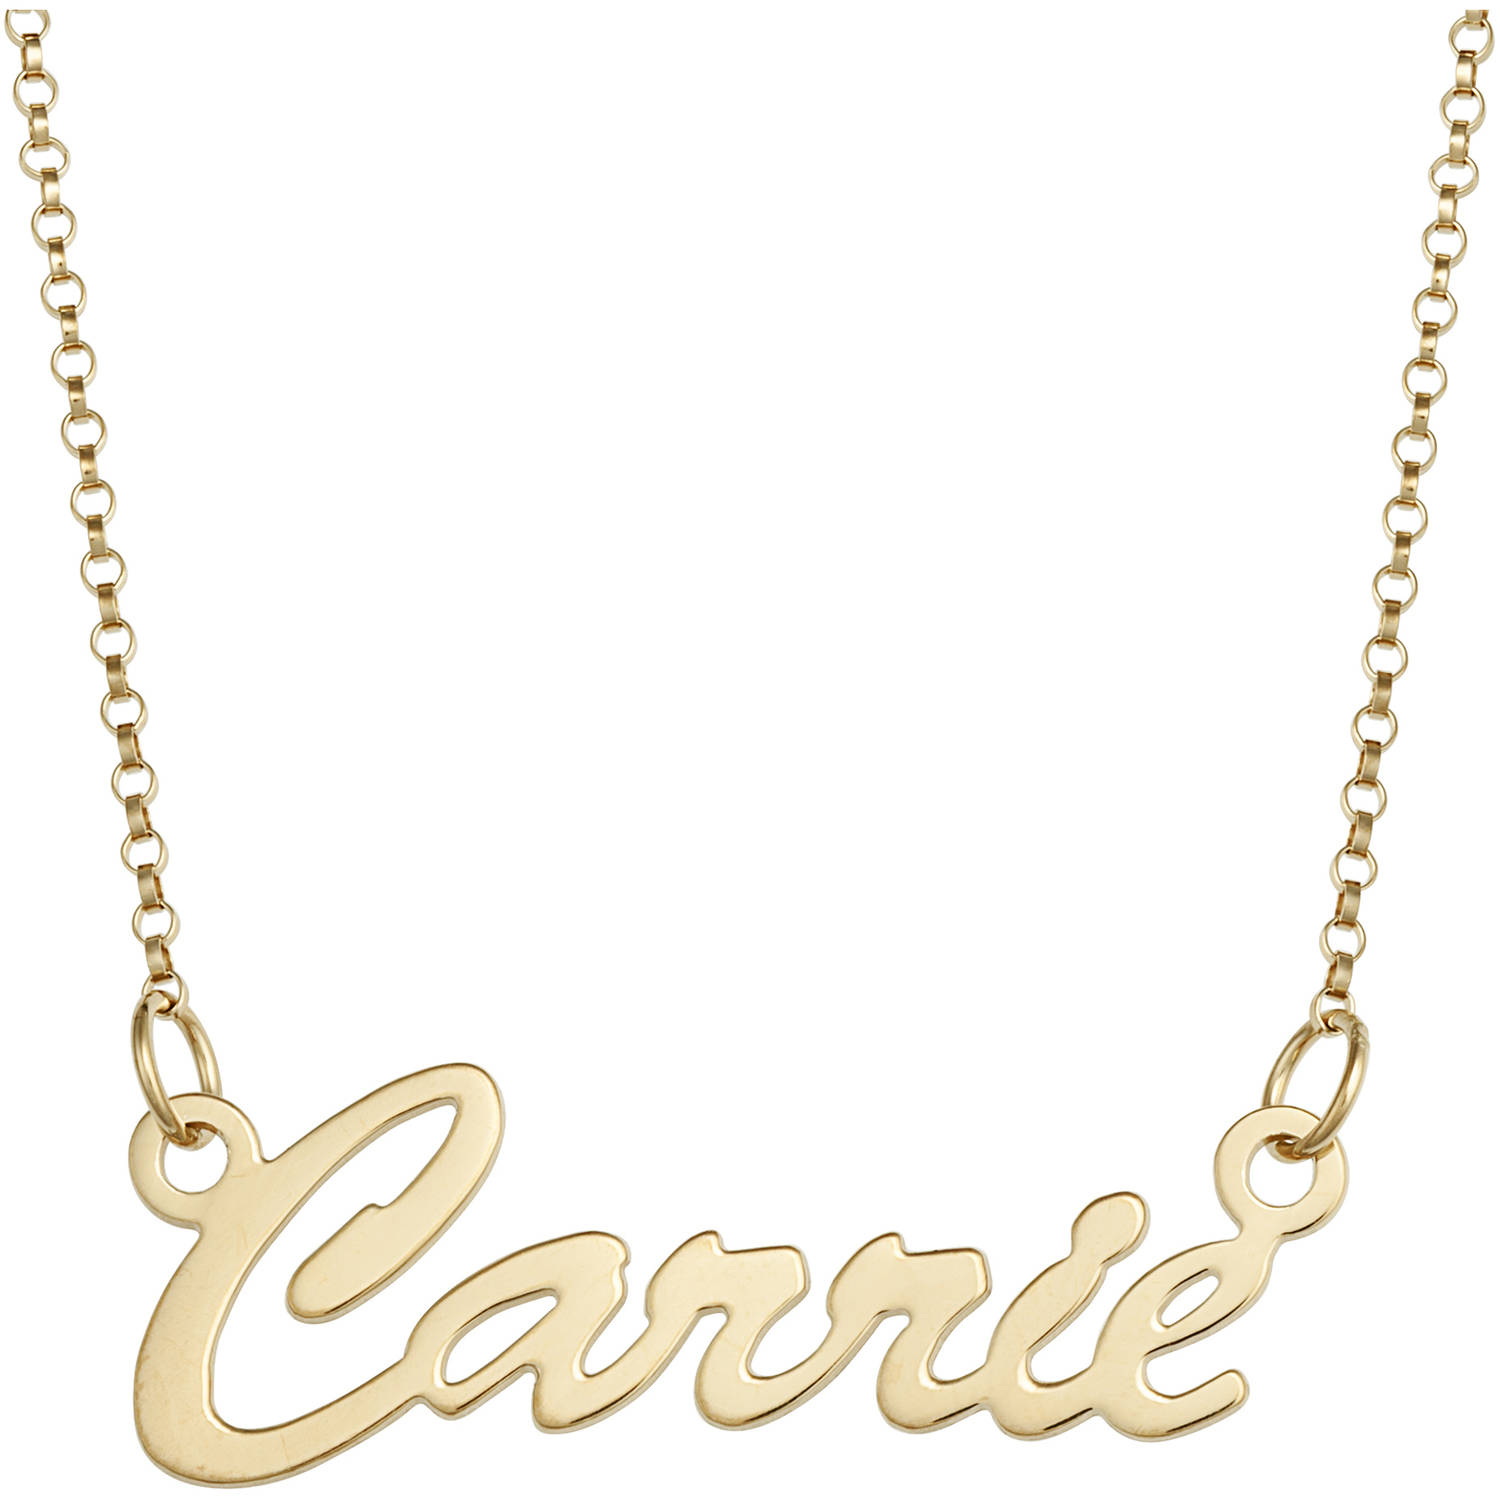 "Personalized 14K Gold over Sterling Silver or Sterling Silver Hollywood Script Name Necklace, 18"" chain"